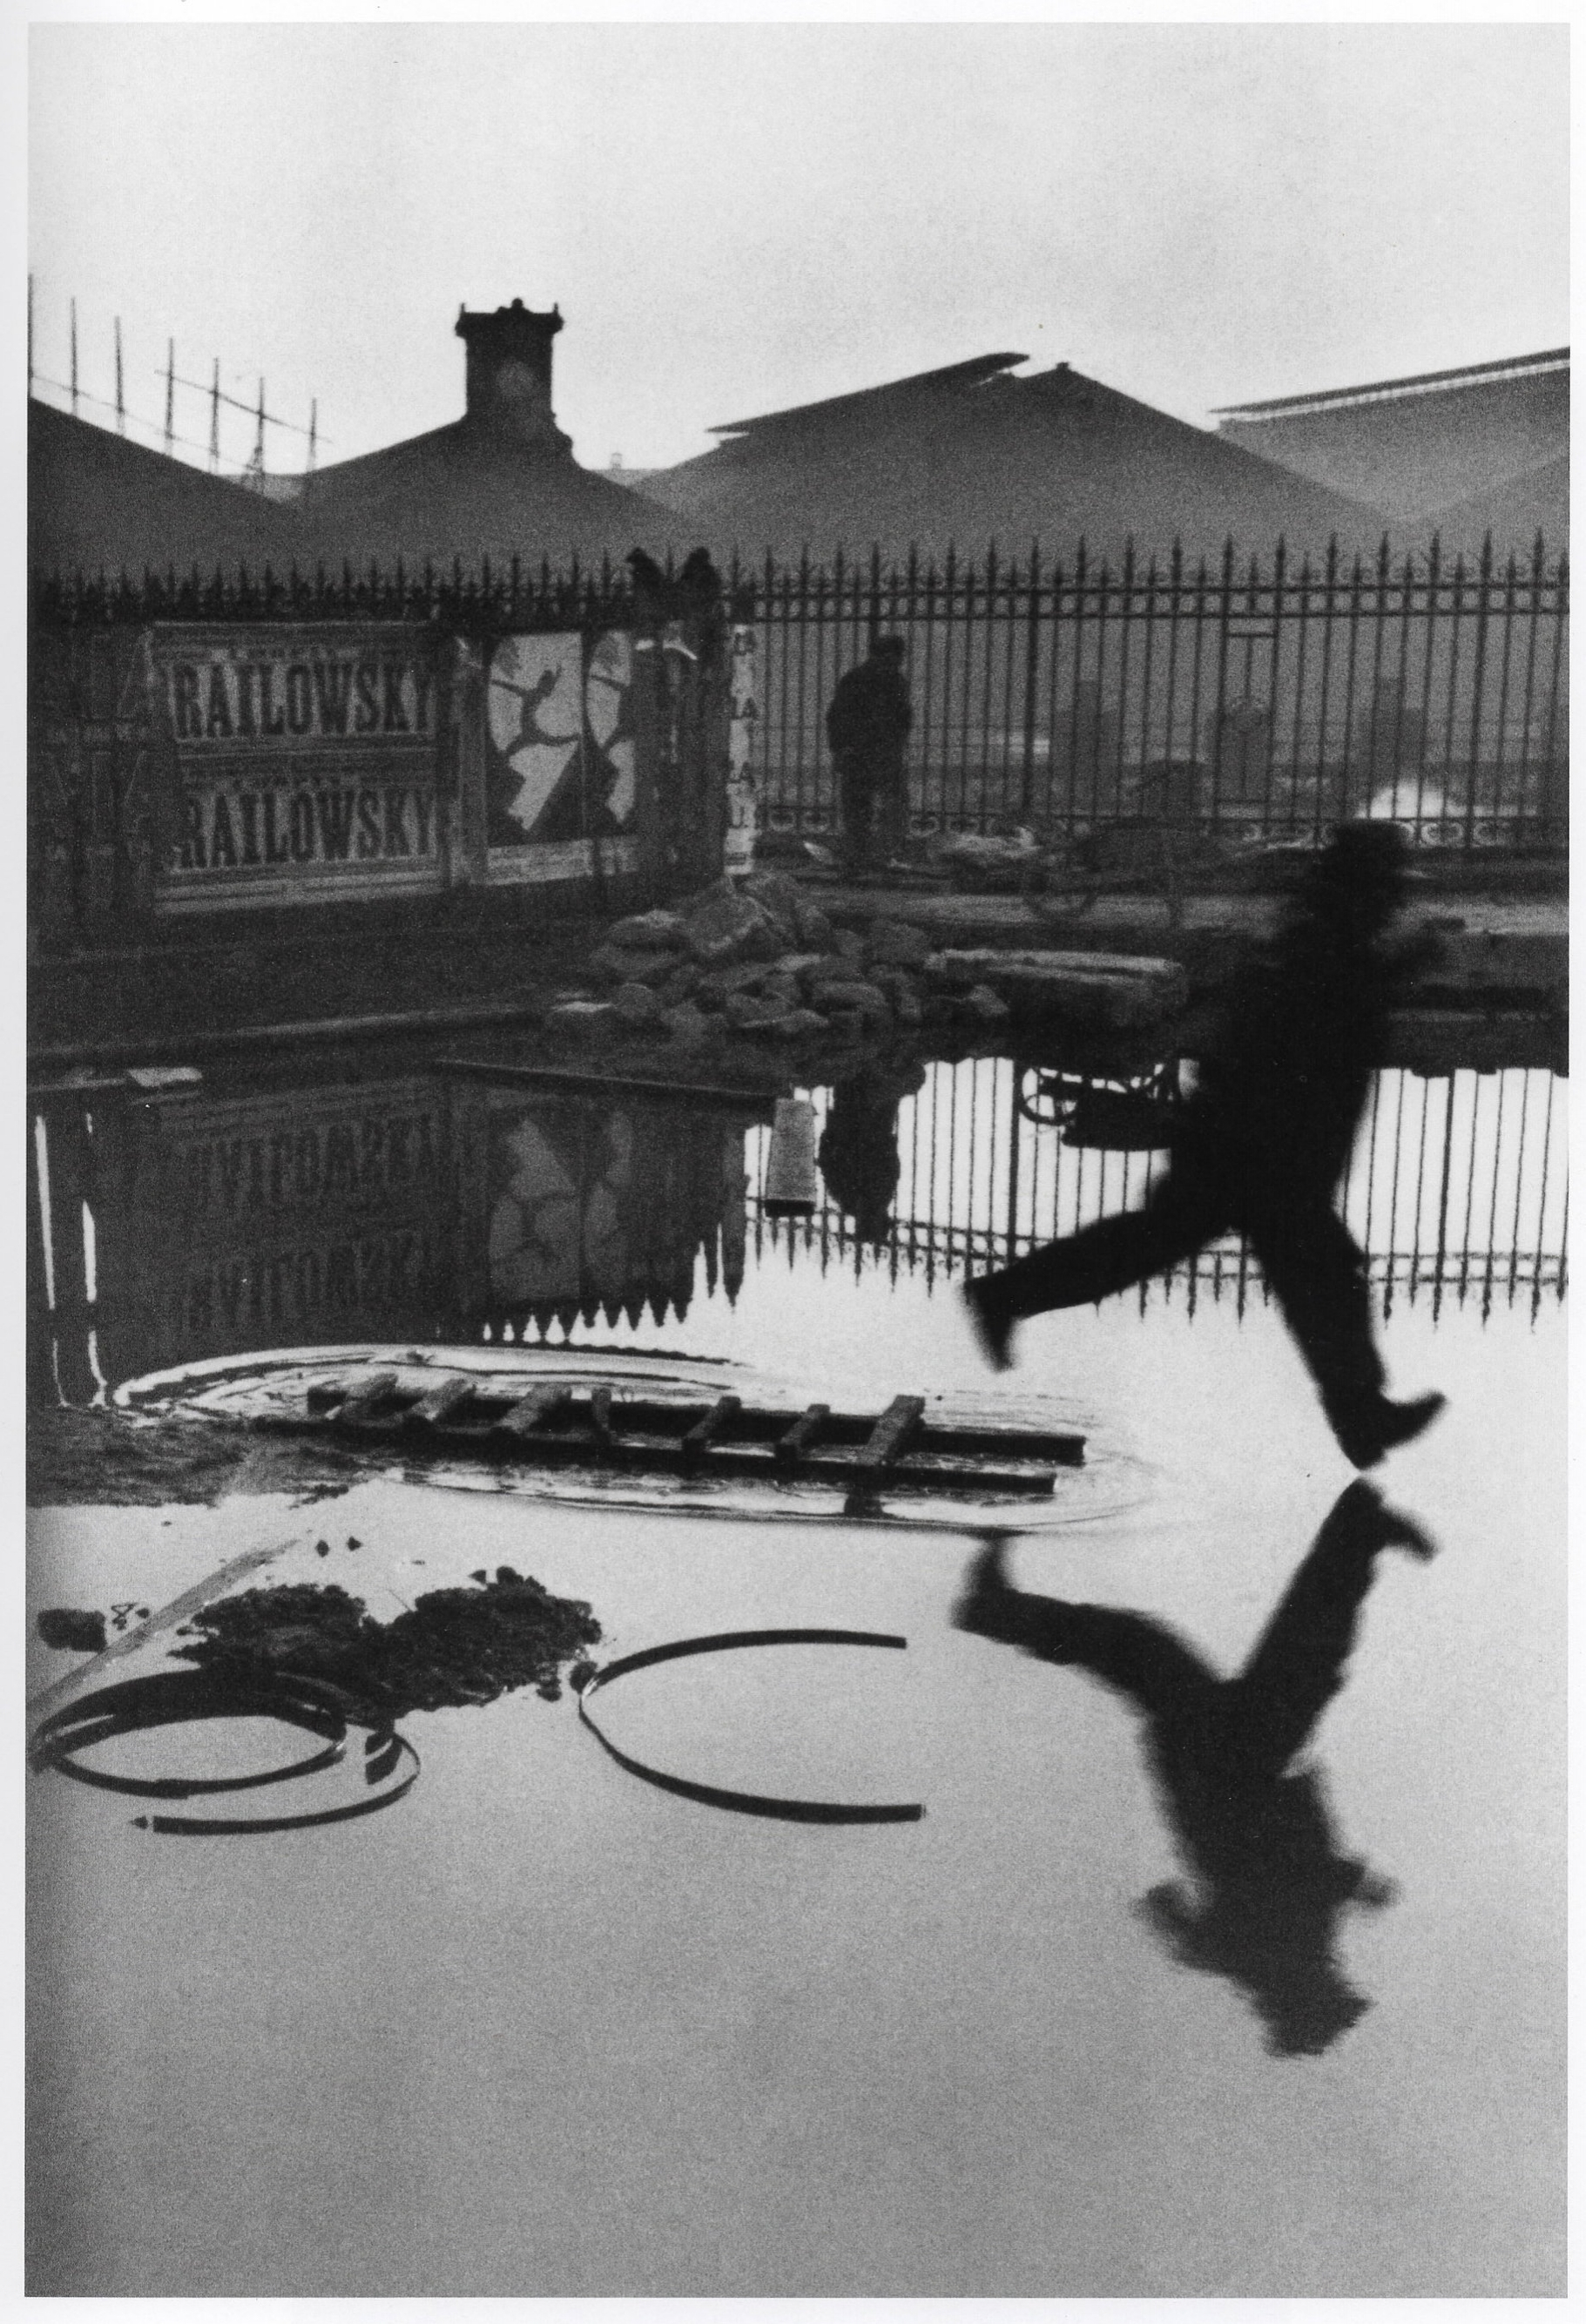 """Fair use: THIS is a decisive moment, one of the most famous by the photographer who coined the phrase,Henri Cartier-Bresson. Copyright 2010 Henri Cartier-Bresson/Magnum Photos.Scanned from """"Henri Cartier-Bresson The Modern Century,"""" Copyright 2010 The Museum of Modern Art. The RX100 Mark V is a radically superior image capture machine compared to the Leica with which Cartier-Bresson took this photograph, but in the end this grainy, slightly blurred image taken almost 85 years ago proves that it's not the machine, it's the person. And that technical perfection is NOT always the goal."""